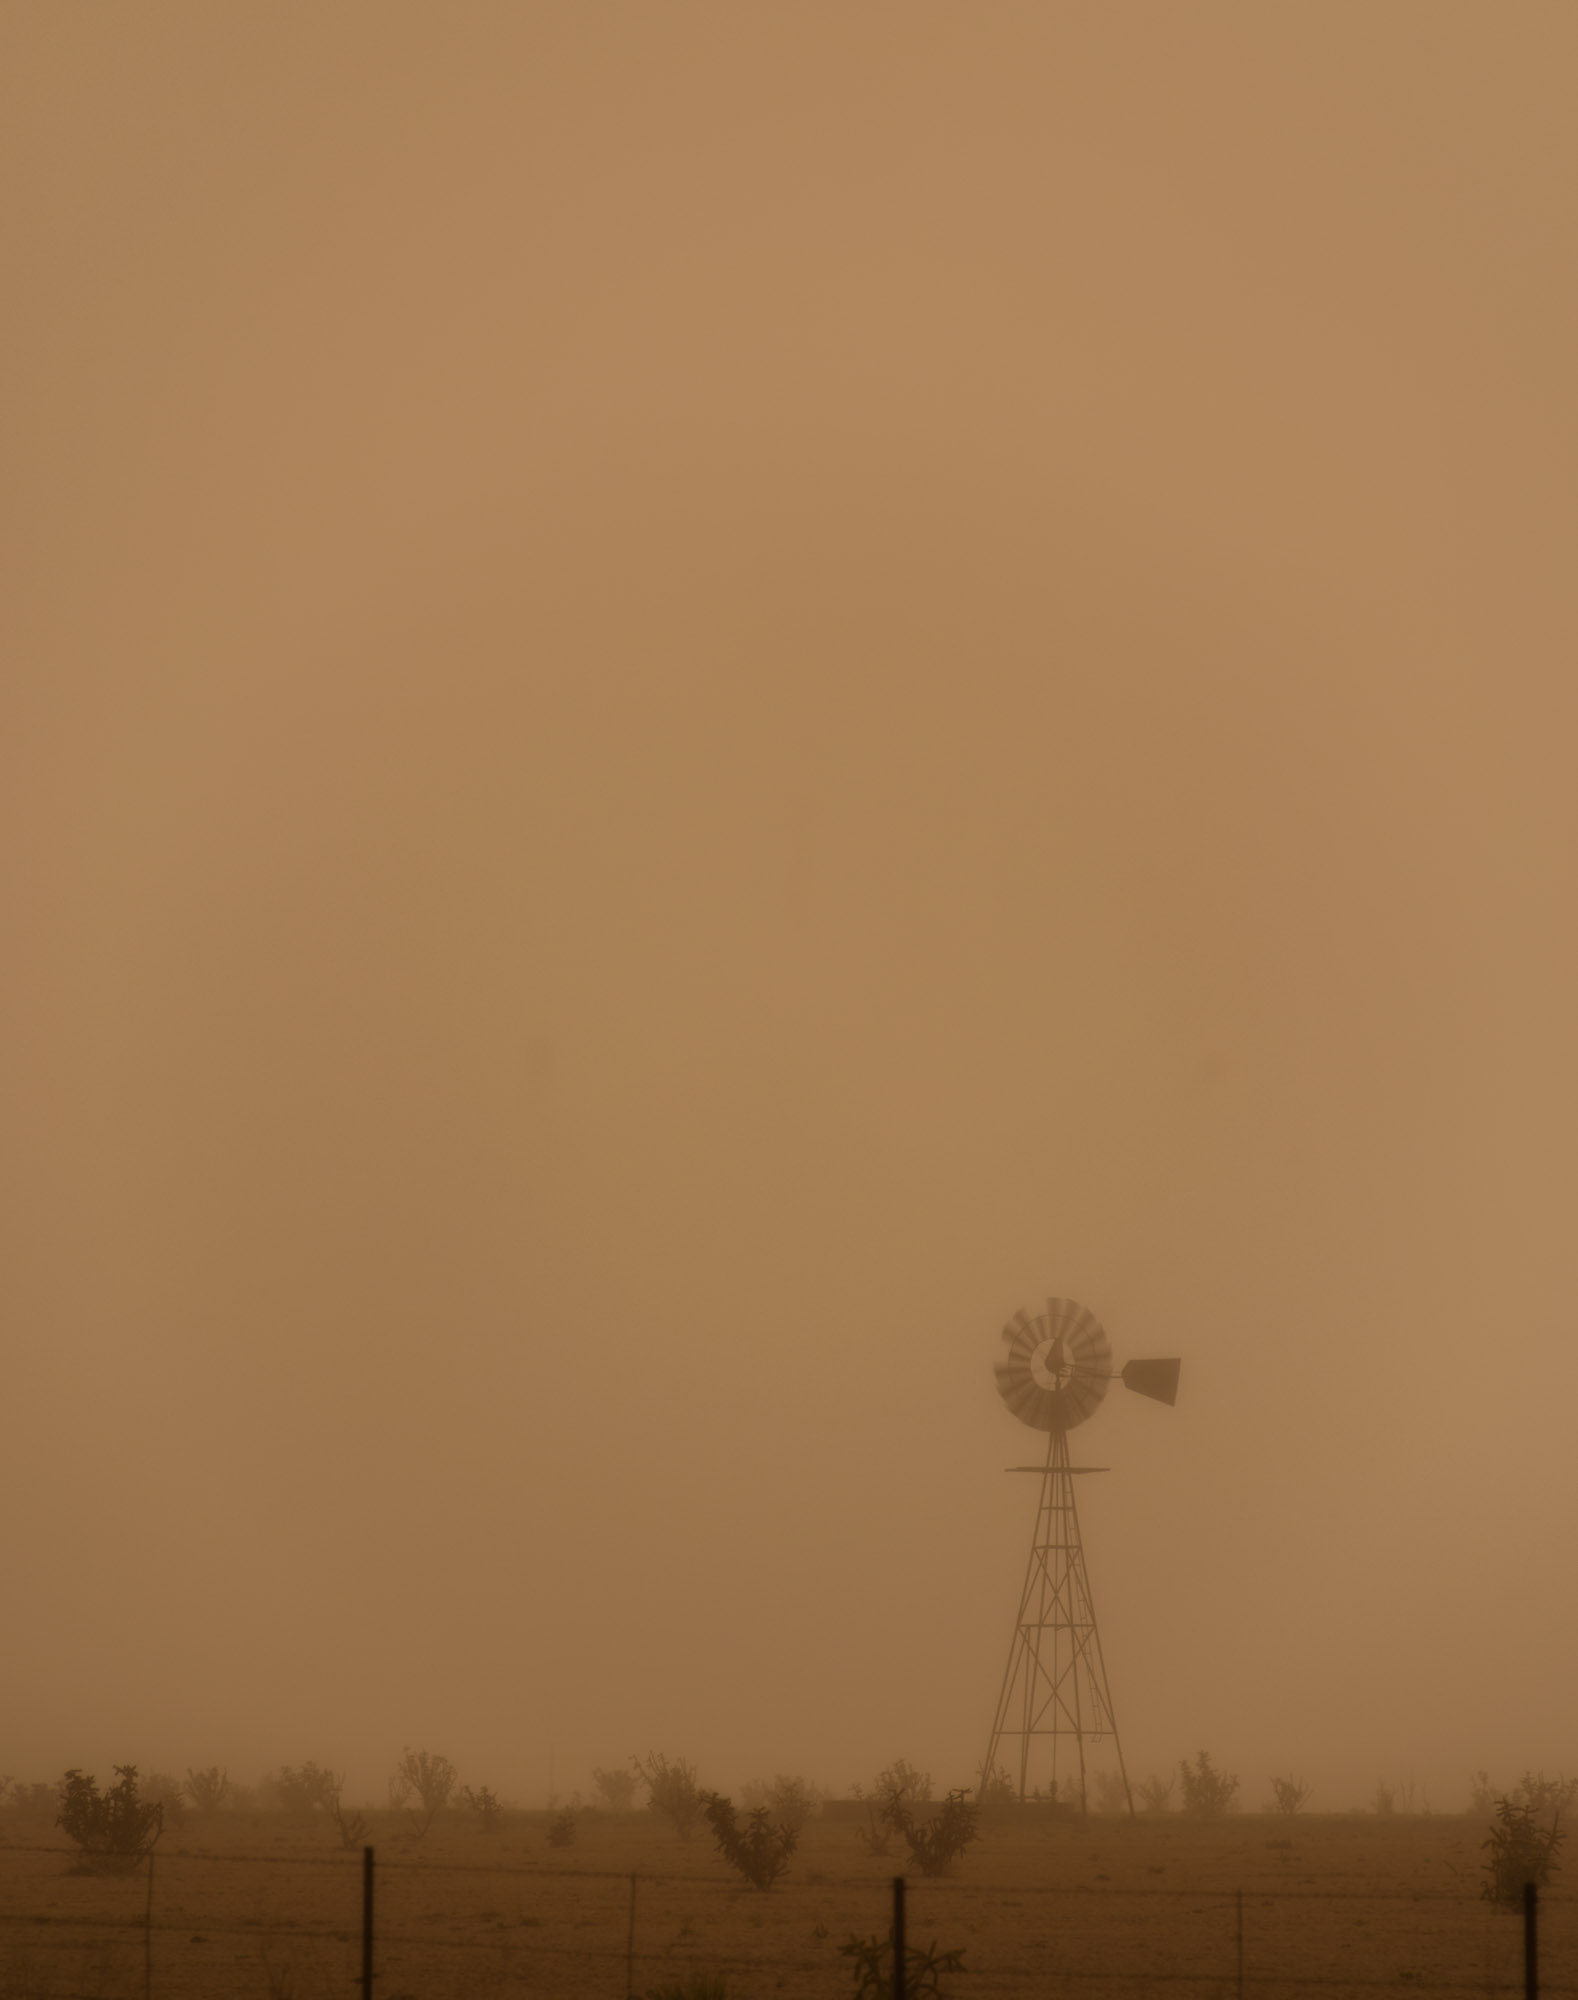 Windmill in dust storm - Grady, New Mexico